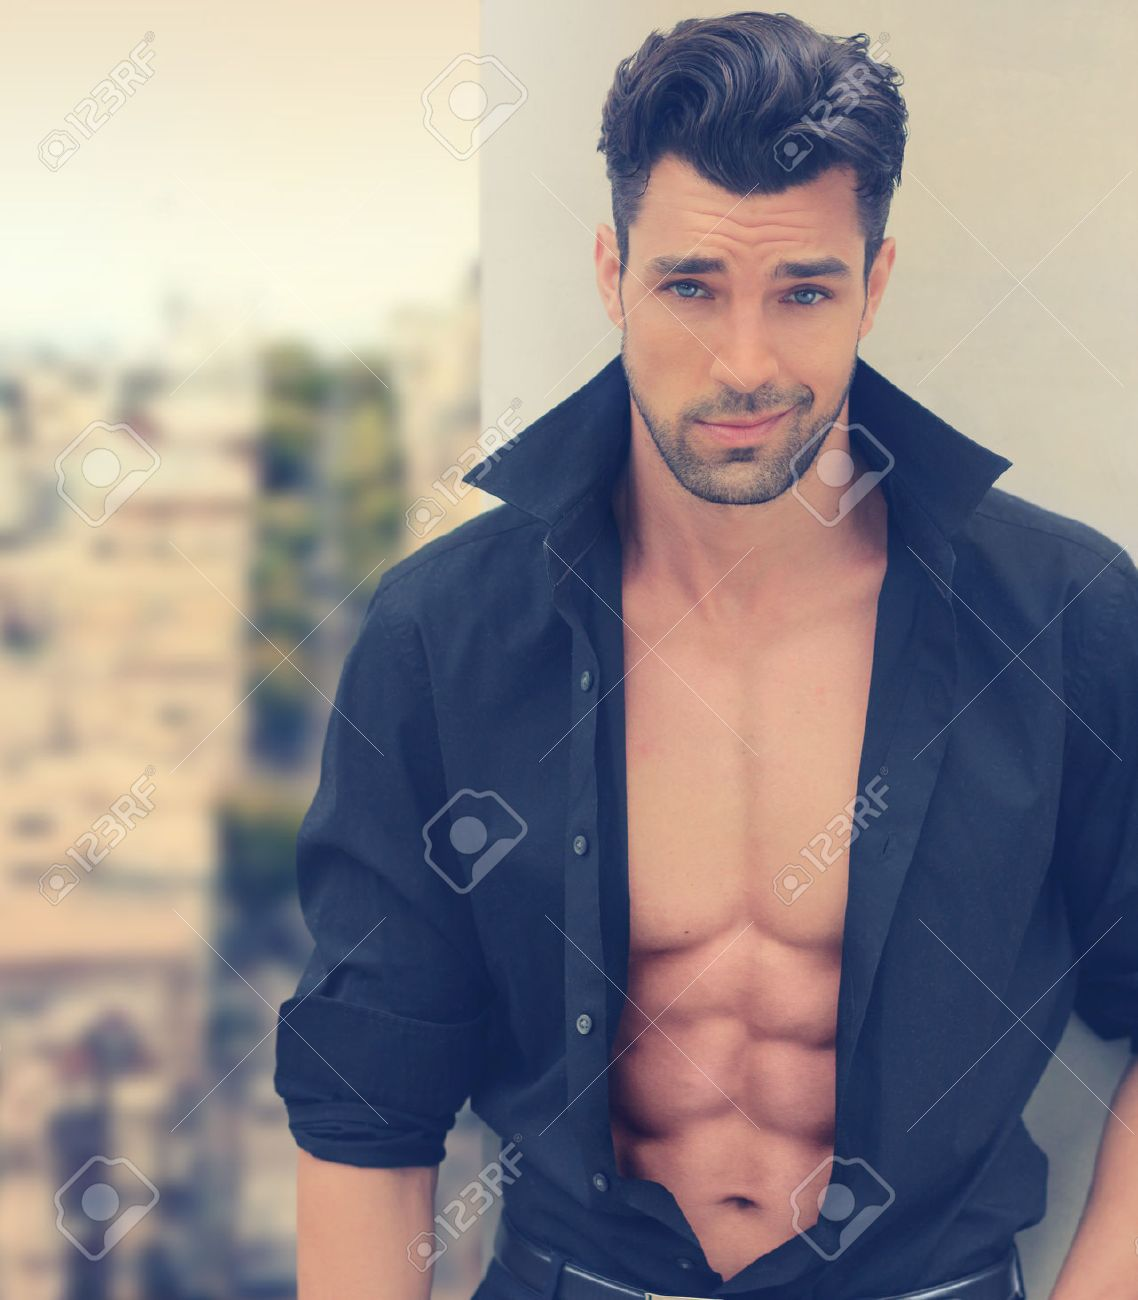 Male sexy image